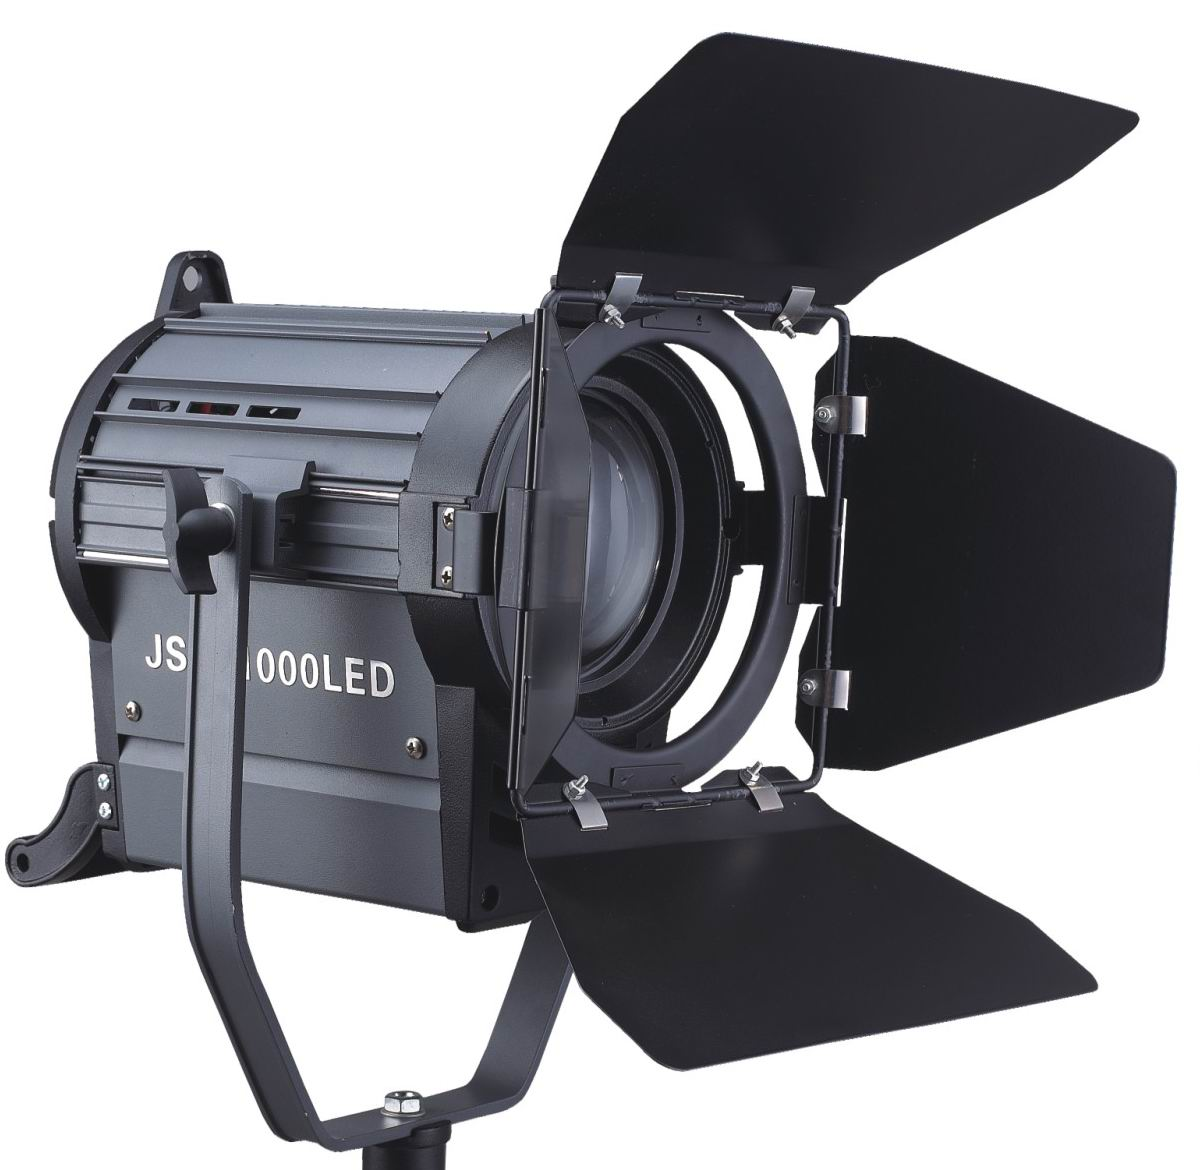 150W LED Fresnel Light JSP-1000,CRI 92,5600K,Remote Control